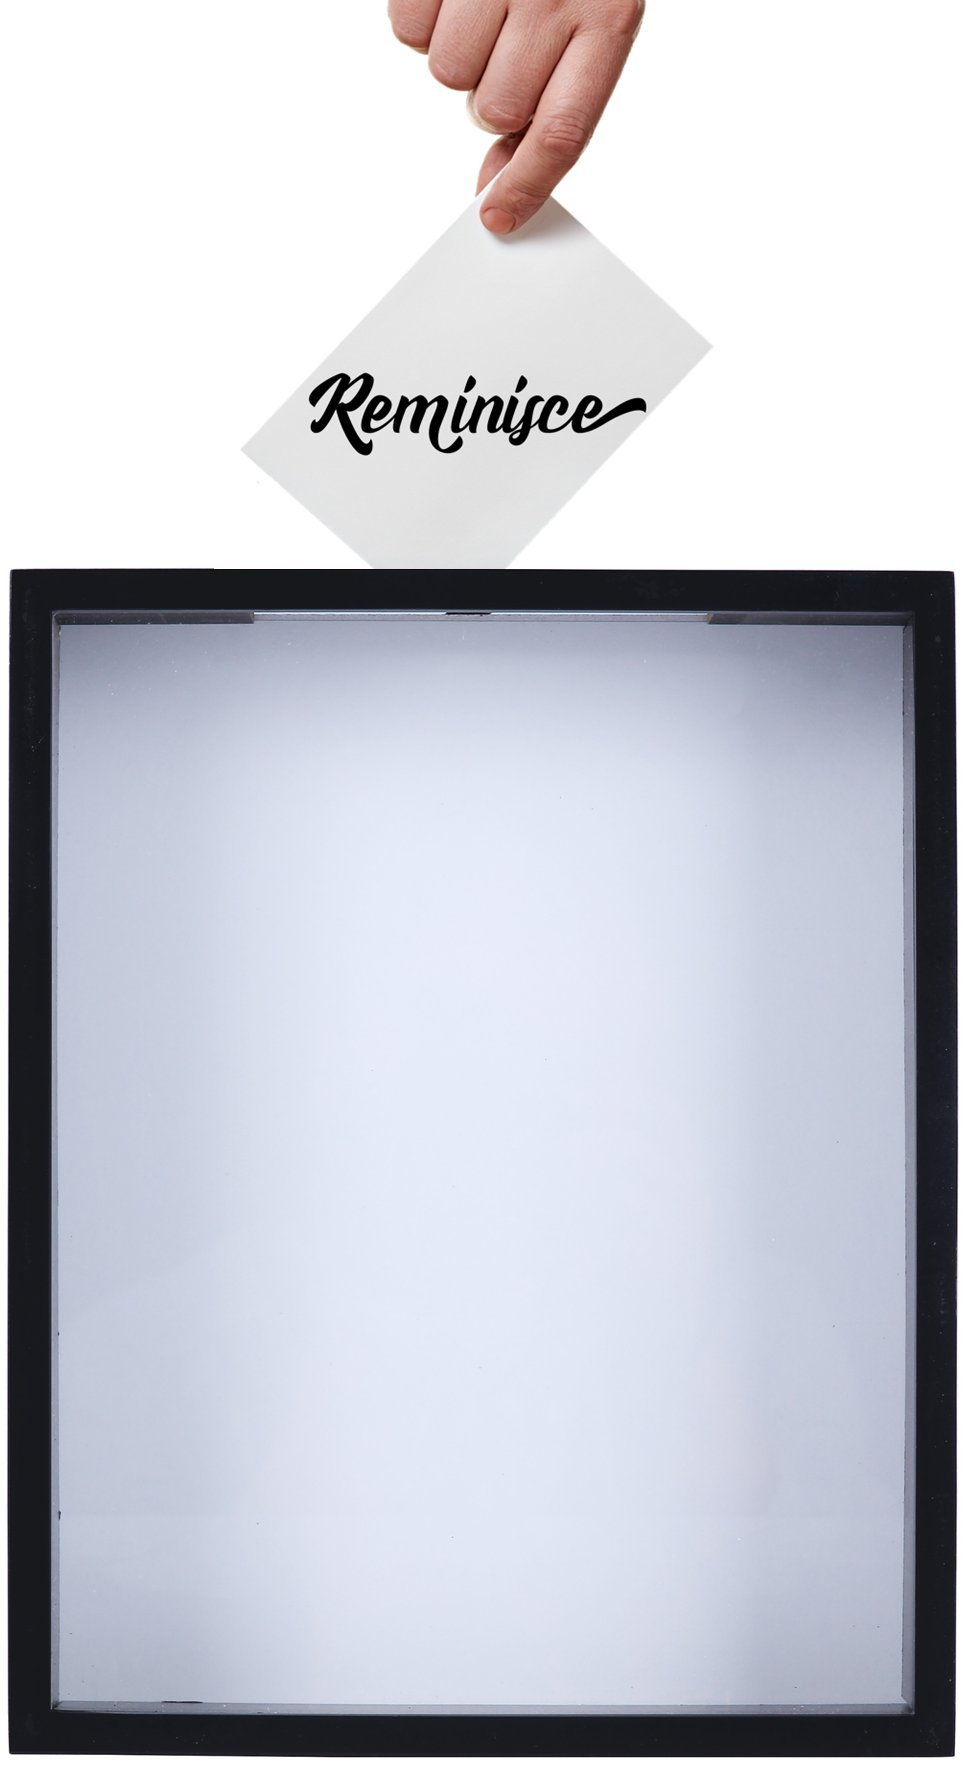 Shadow Box Display Case – Top Loading Black Wood Frame - Showcase Bottle Caps, Shells, Ticket Stubs, Airline Tickets, and More (Silver)